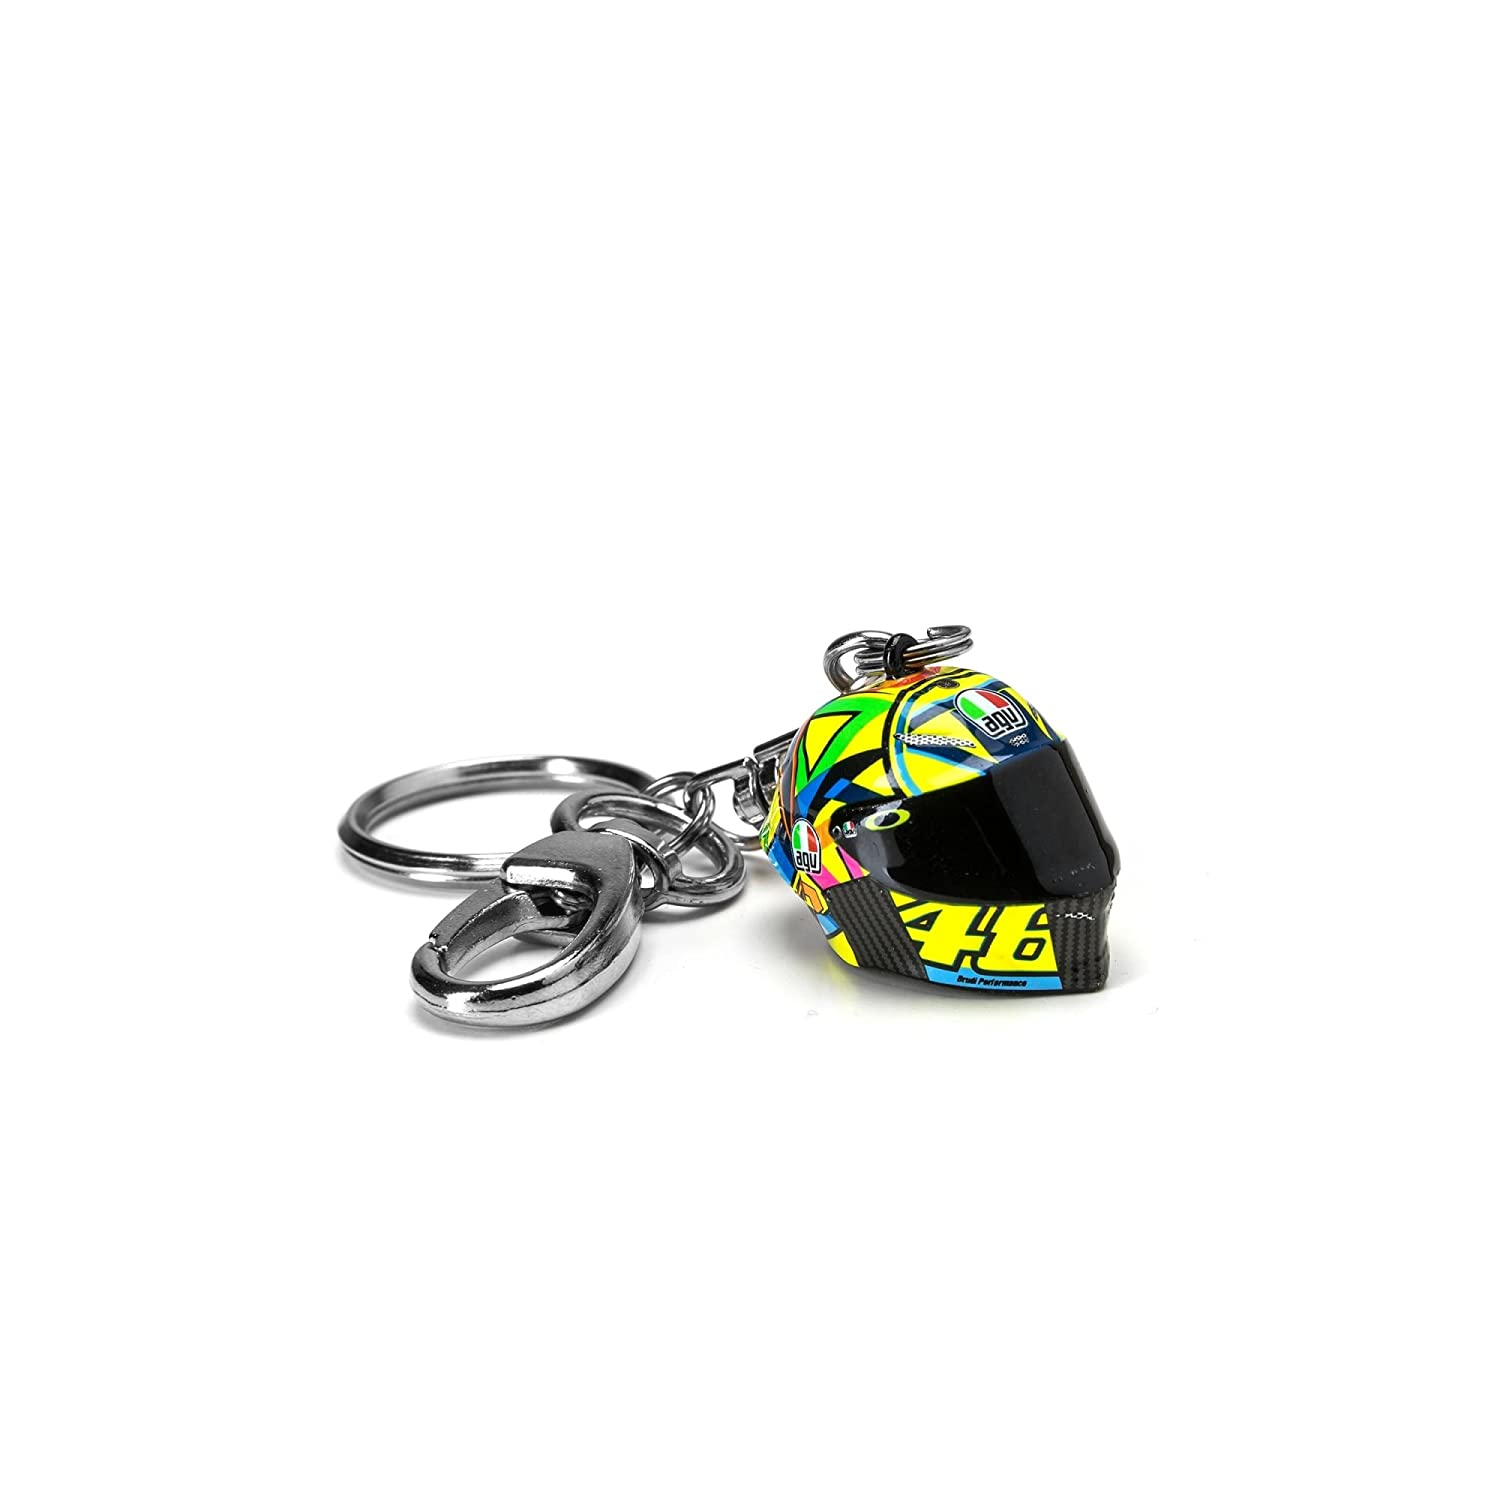 Racing-other Search For Flights Valentino Rossi 46 Helmet Bag Black Fan Apparel & Souvenirs